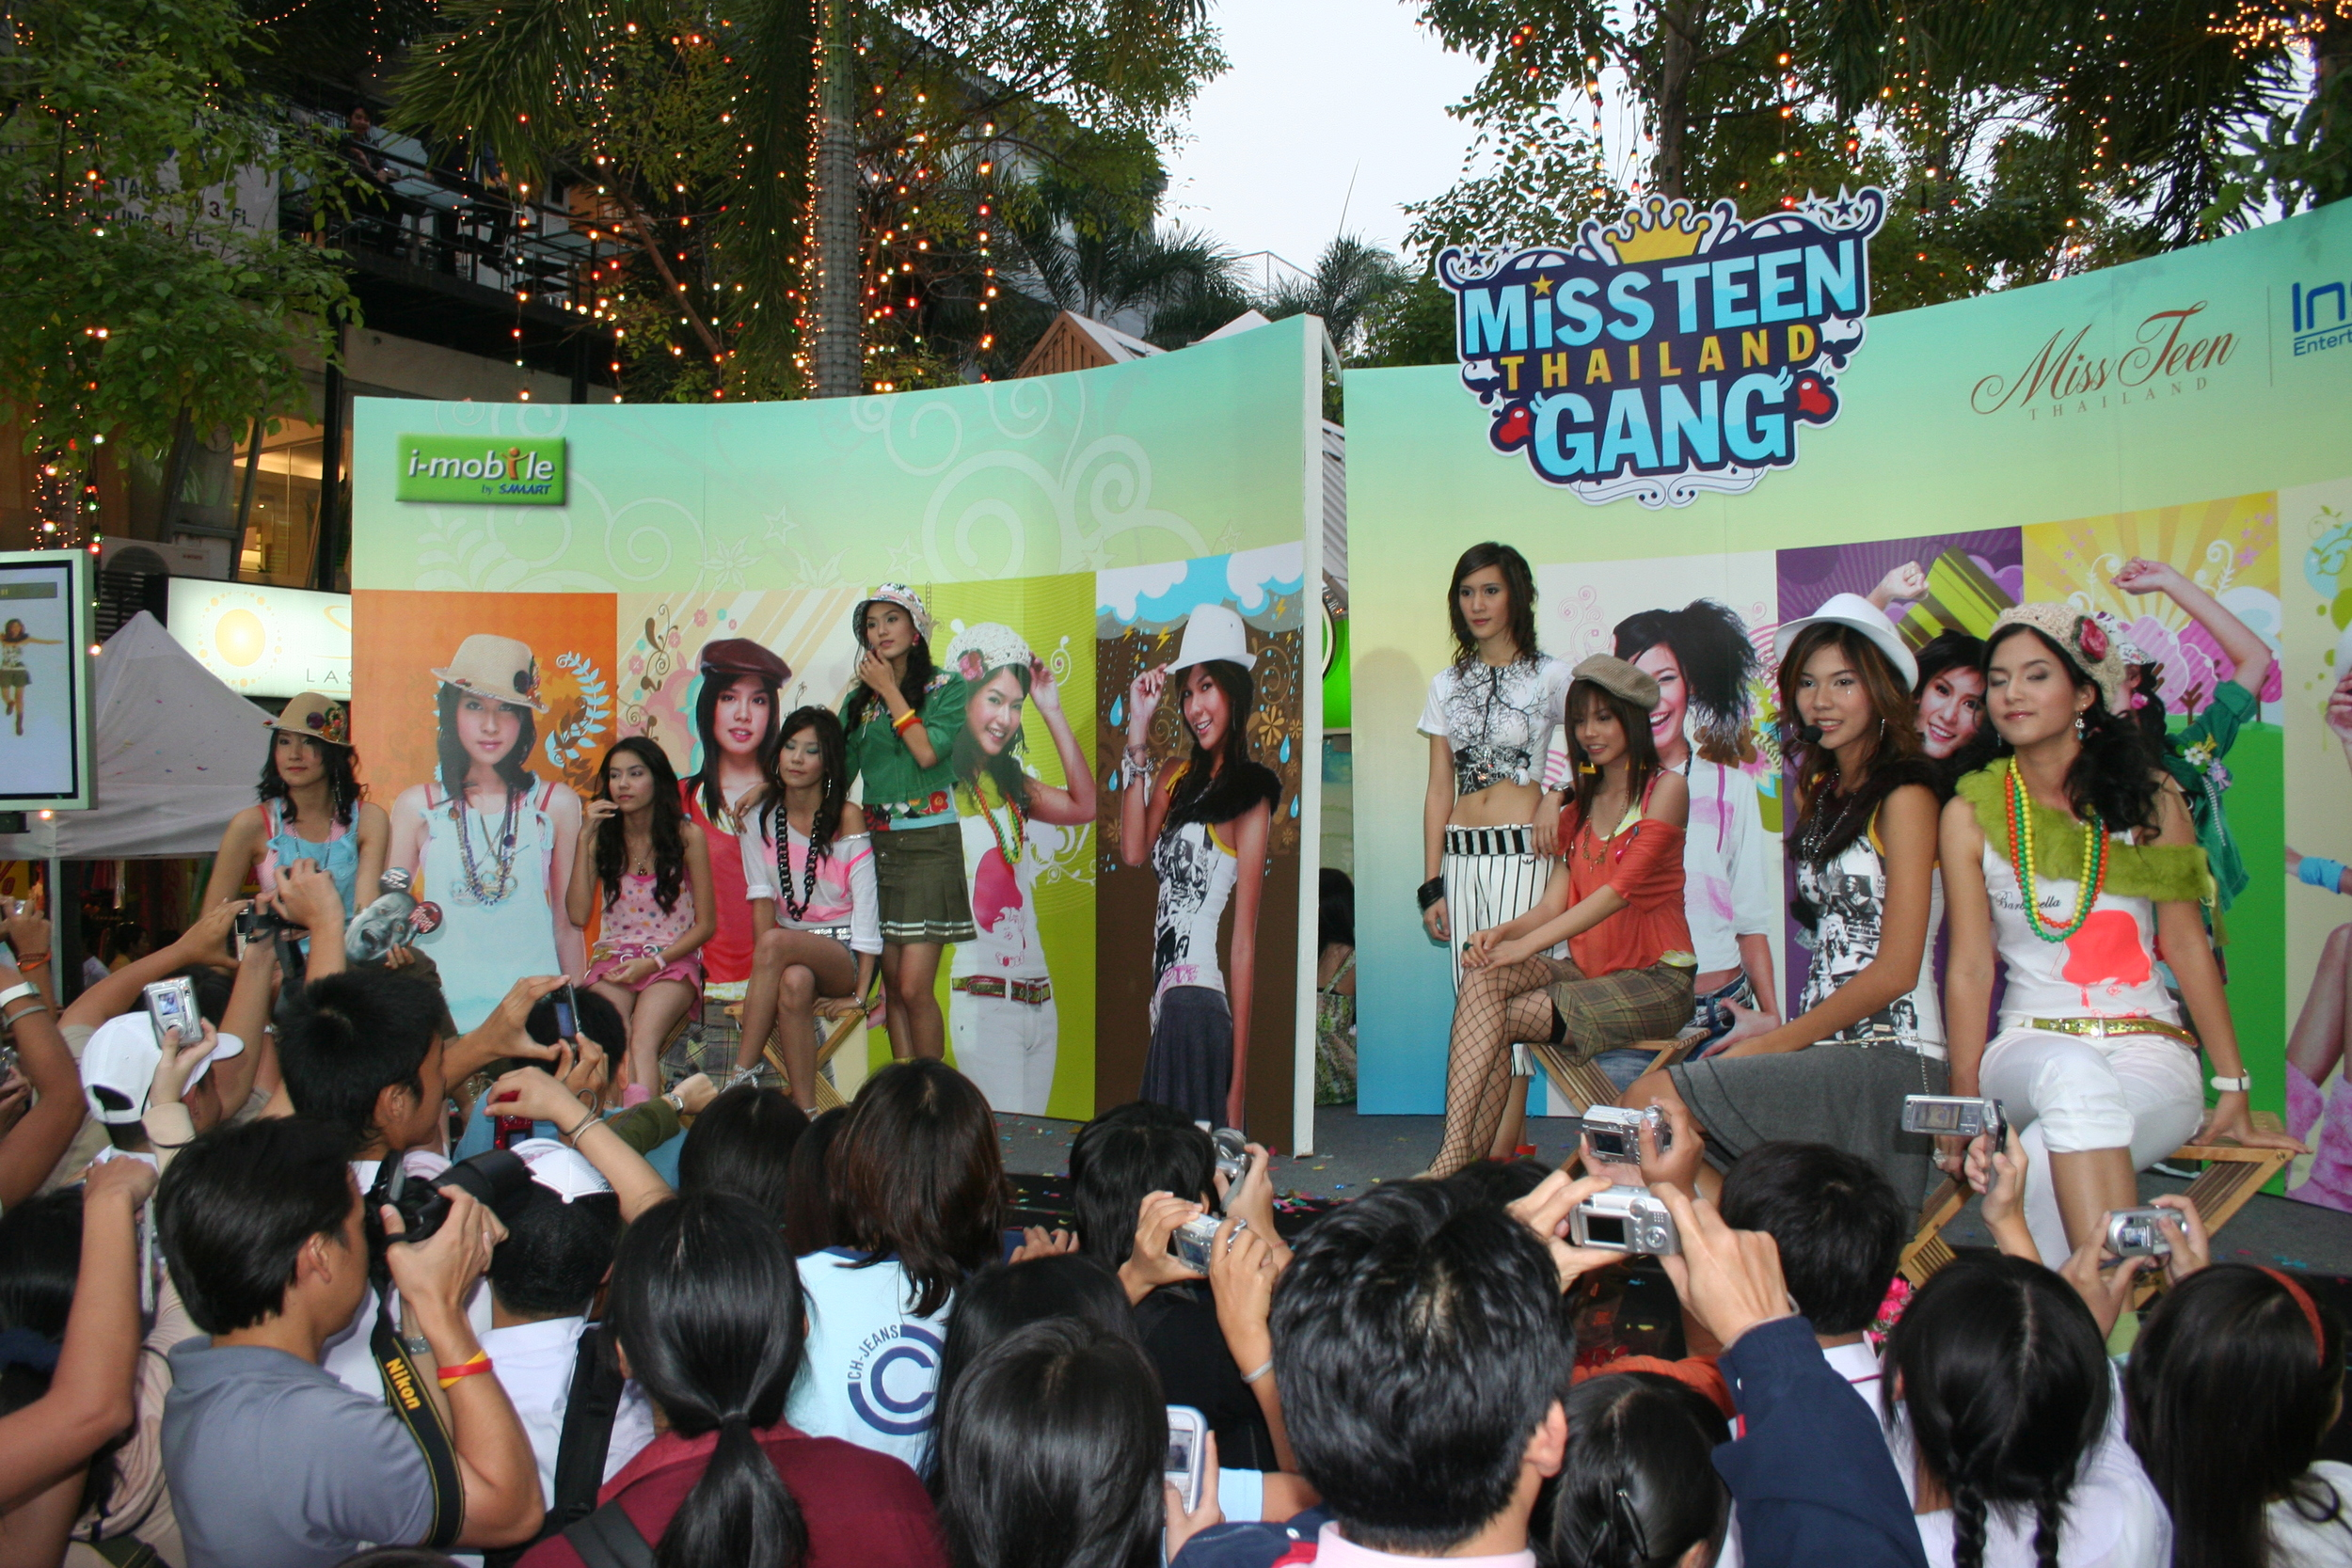 Miss Teen Thailand Gang picture event.